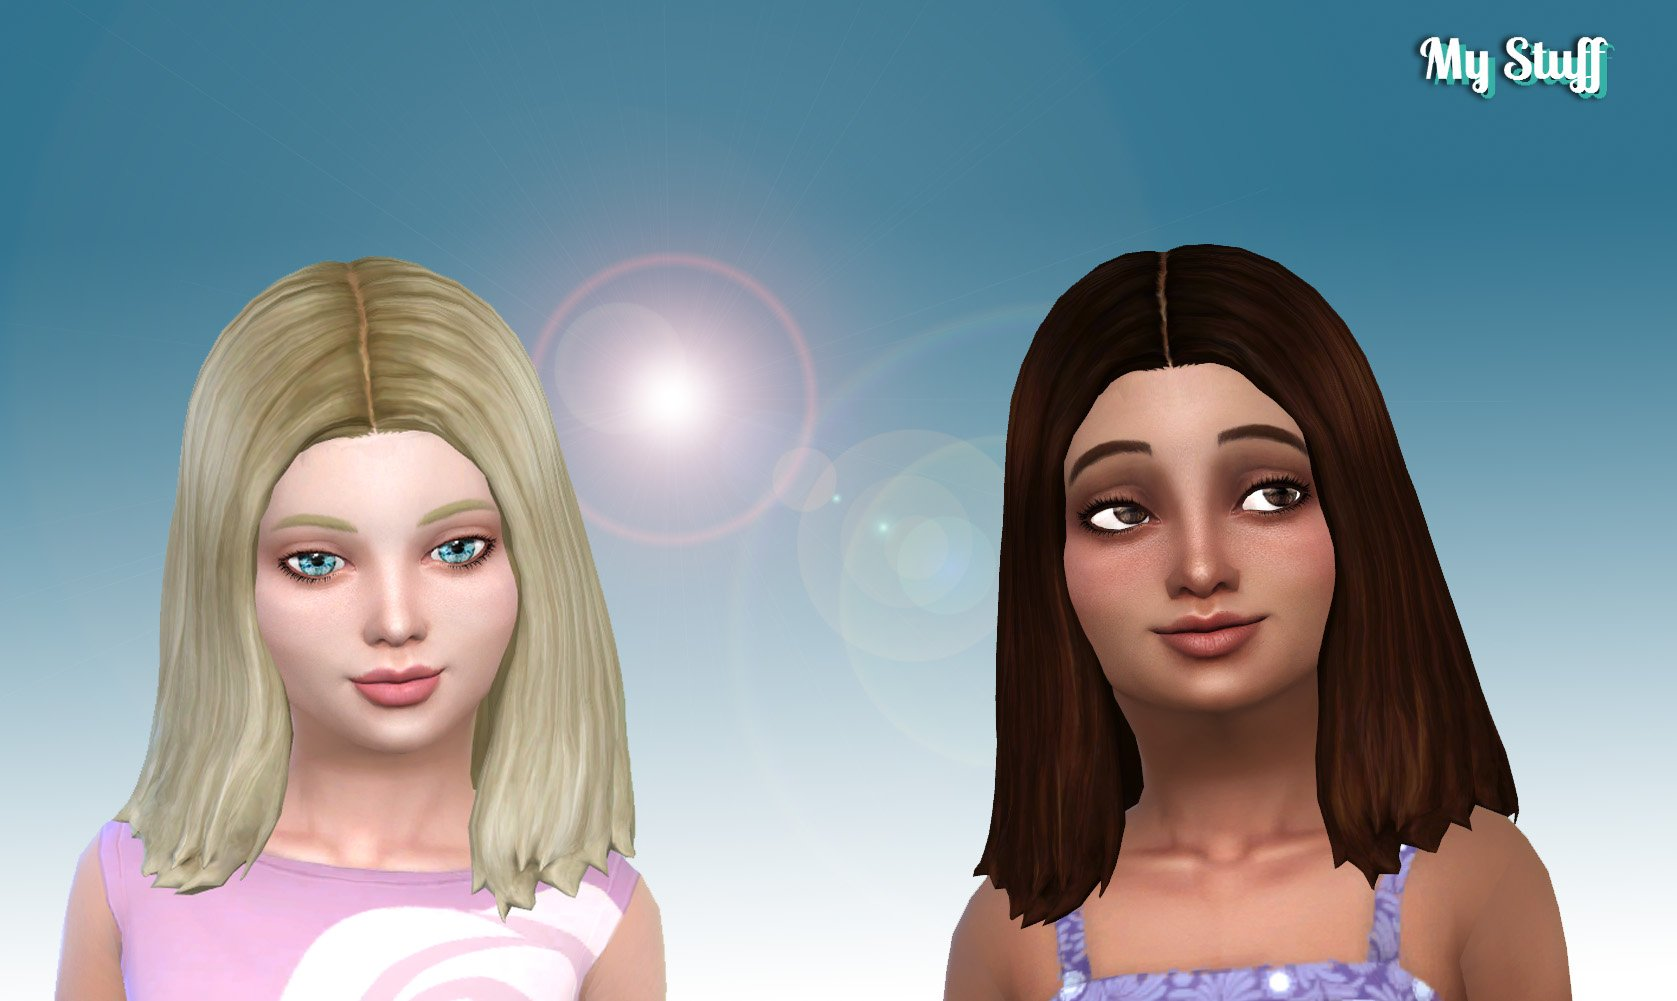 Thelma Hairstyle for Girls